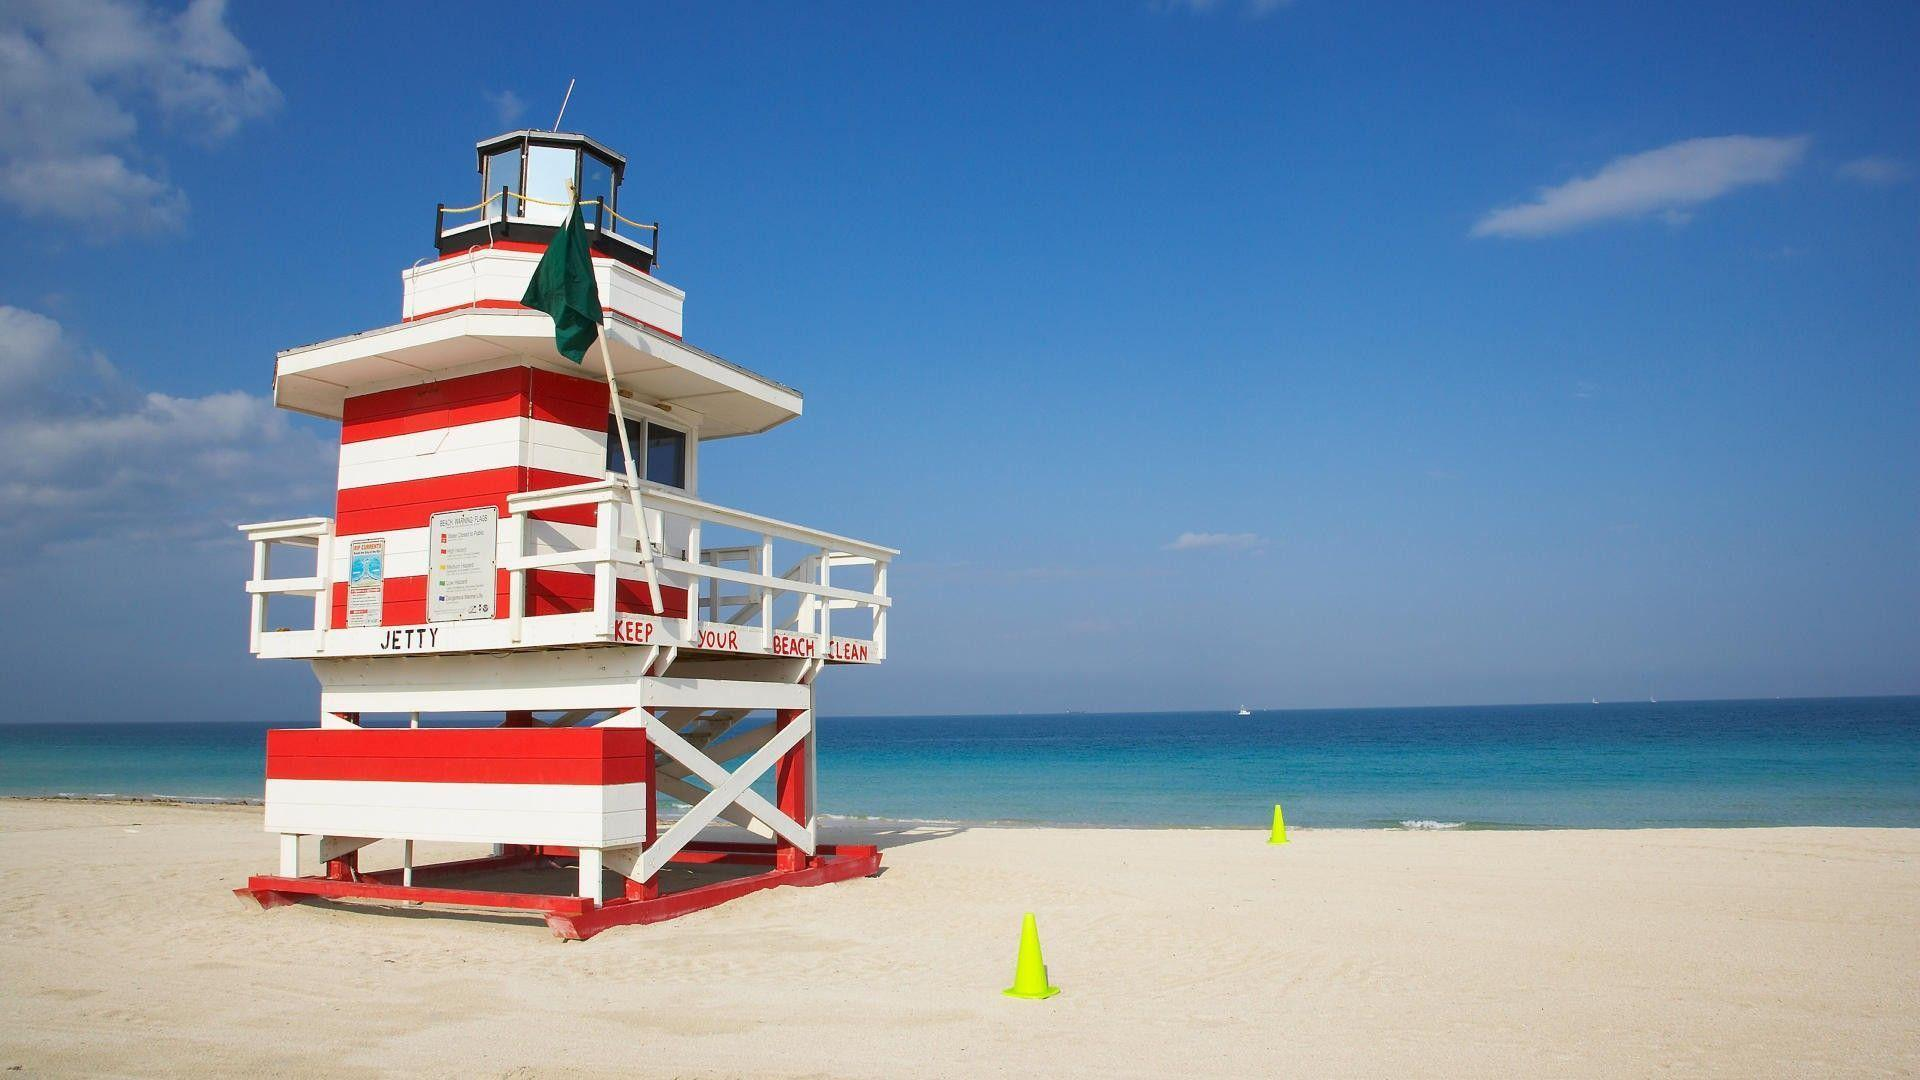 Miami Beach Wallpaper and Backgrounds | Download free windows 8 hd ...